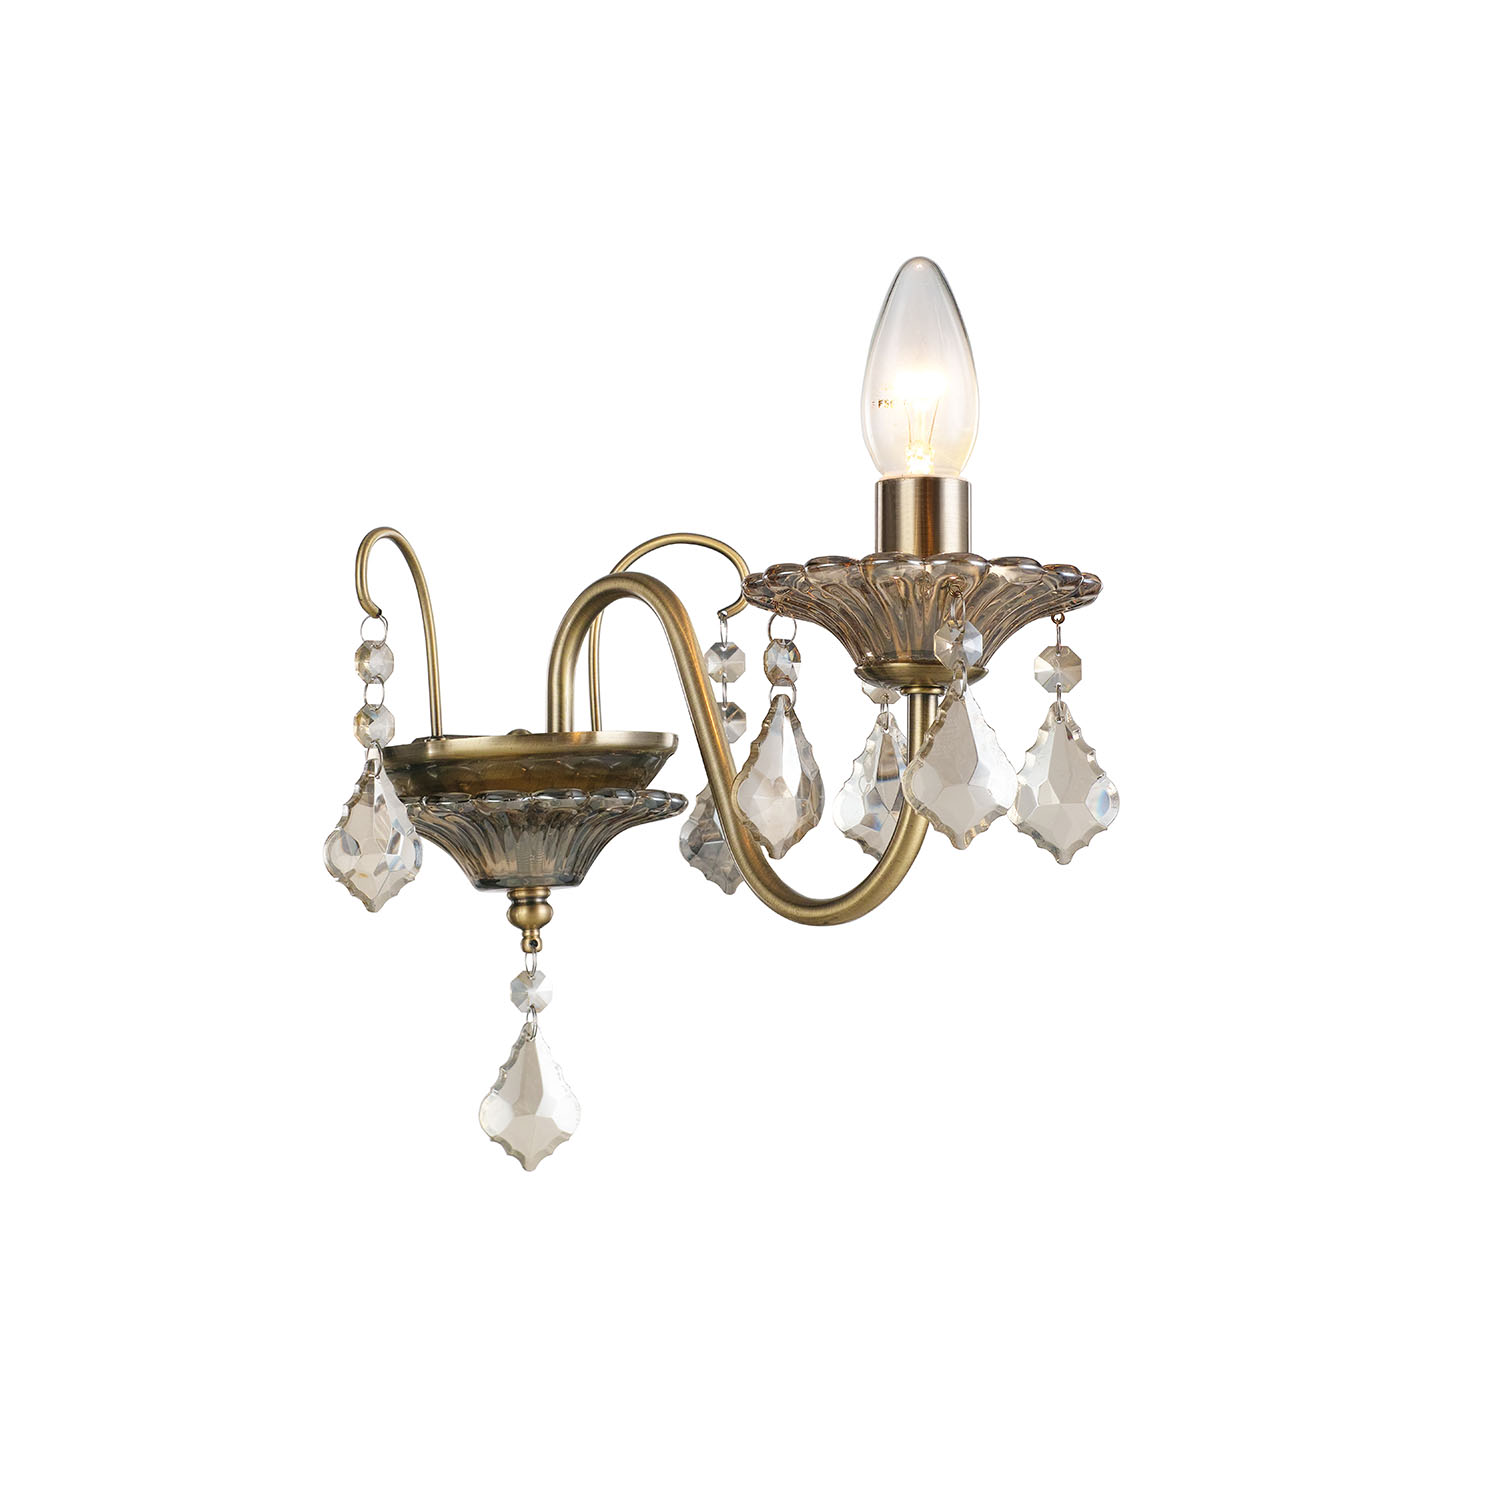 Image of Casa Taylor 2 Light Wall Fitting, Antique Brass